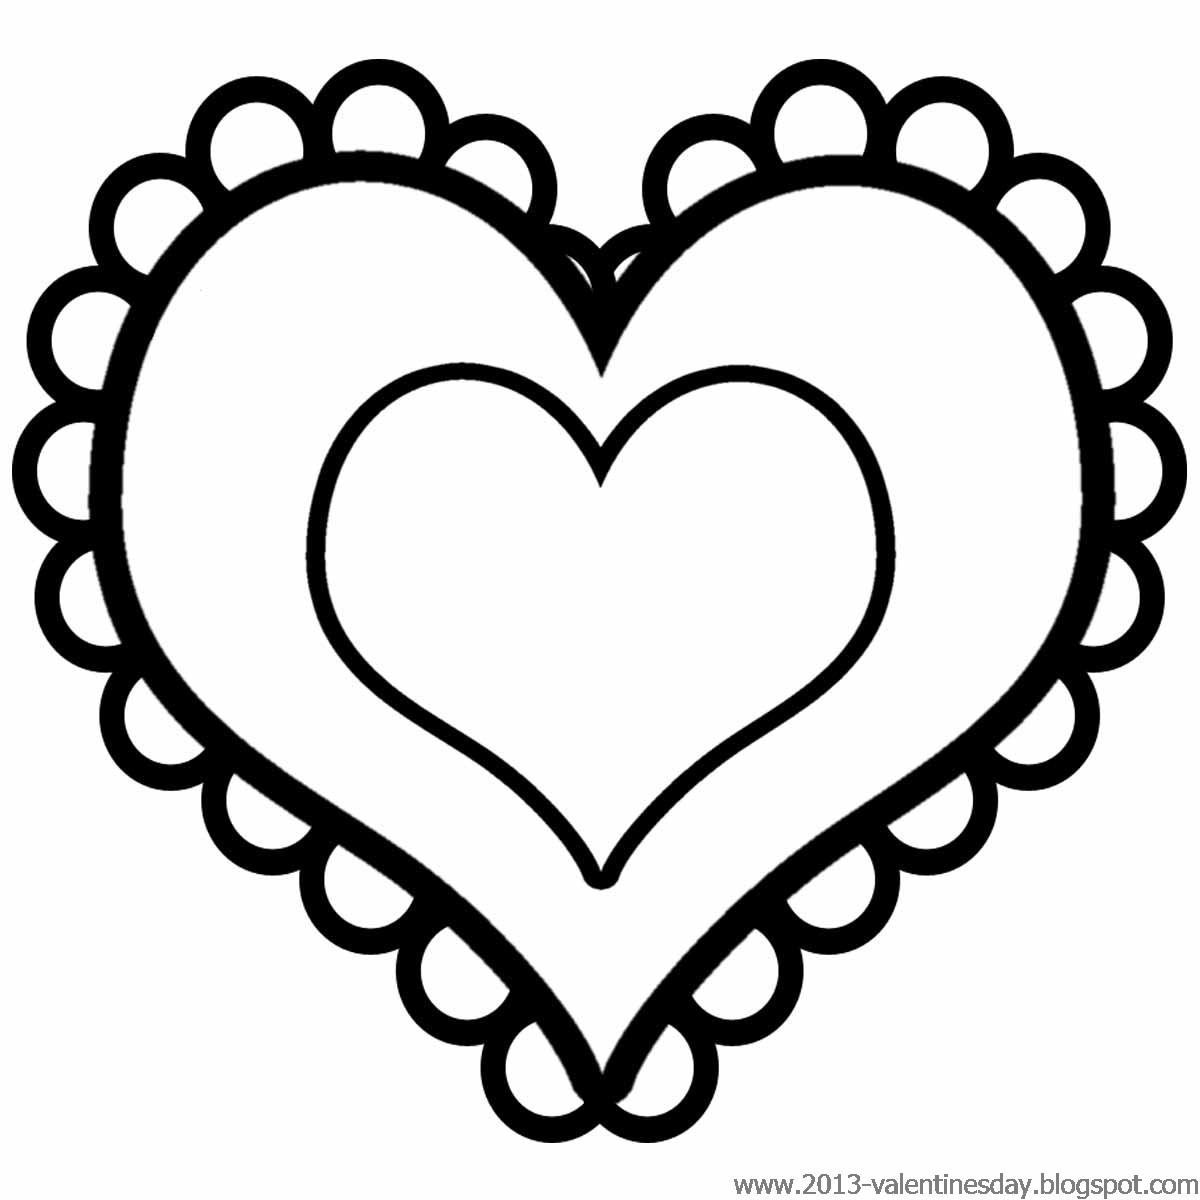 Heart clipart for kids black and white clipart library 51+ Black And White Valentine Clip Art | ClipartLook clipart library